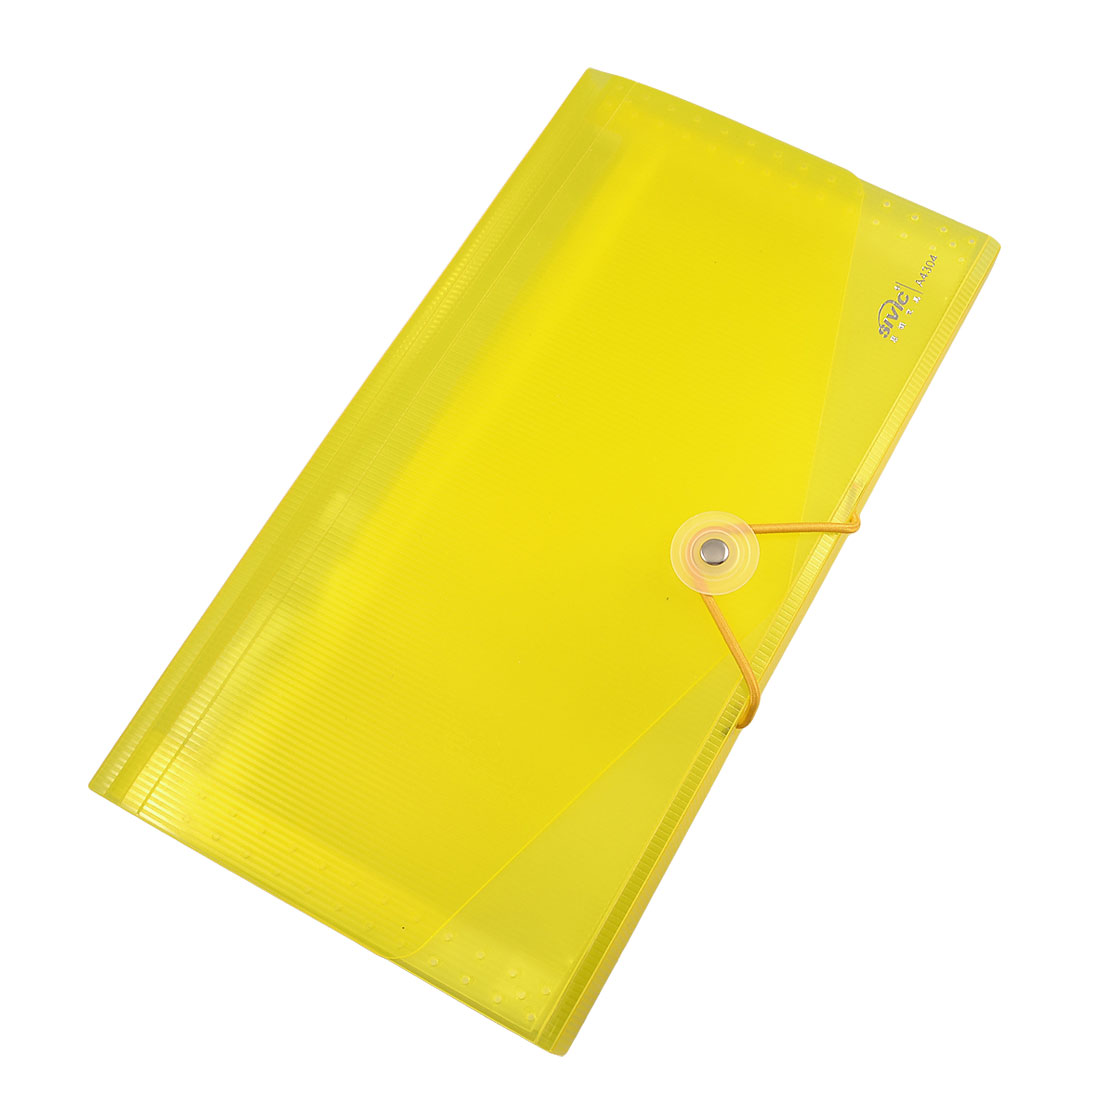 Letters Stickers 13-slot Plastic File Folder Examination Paper Holder Clear Yellow